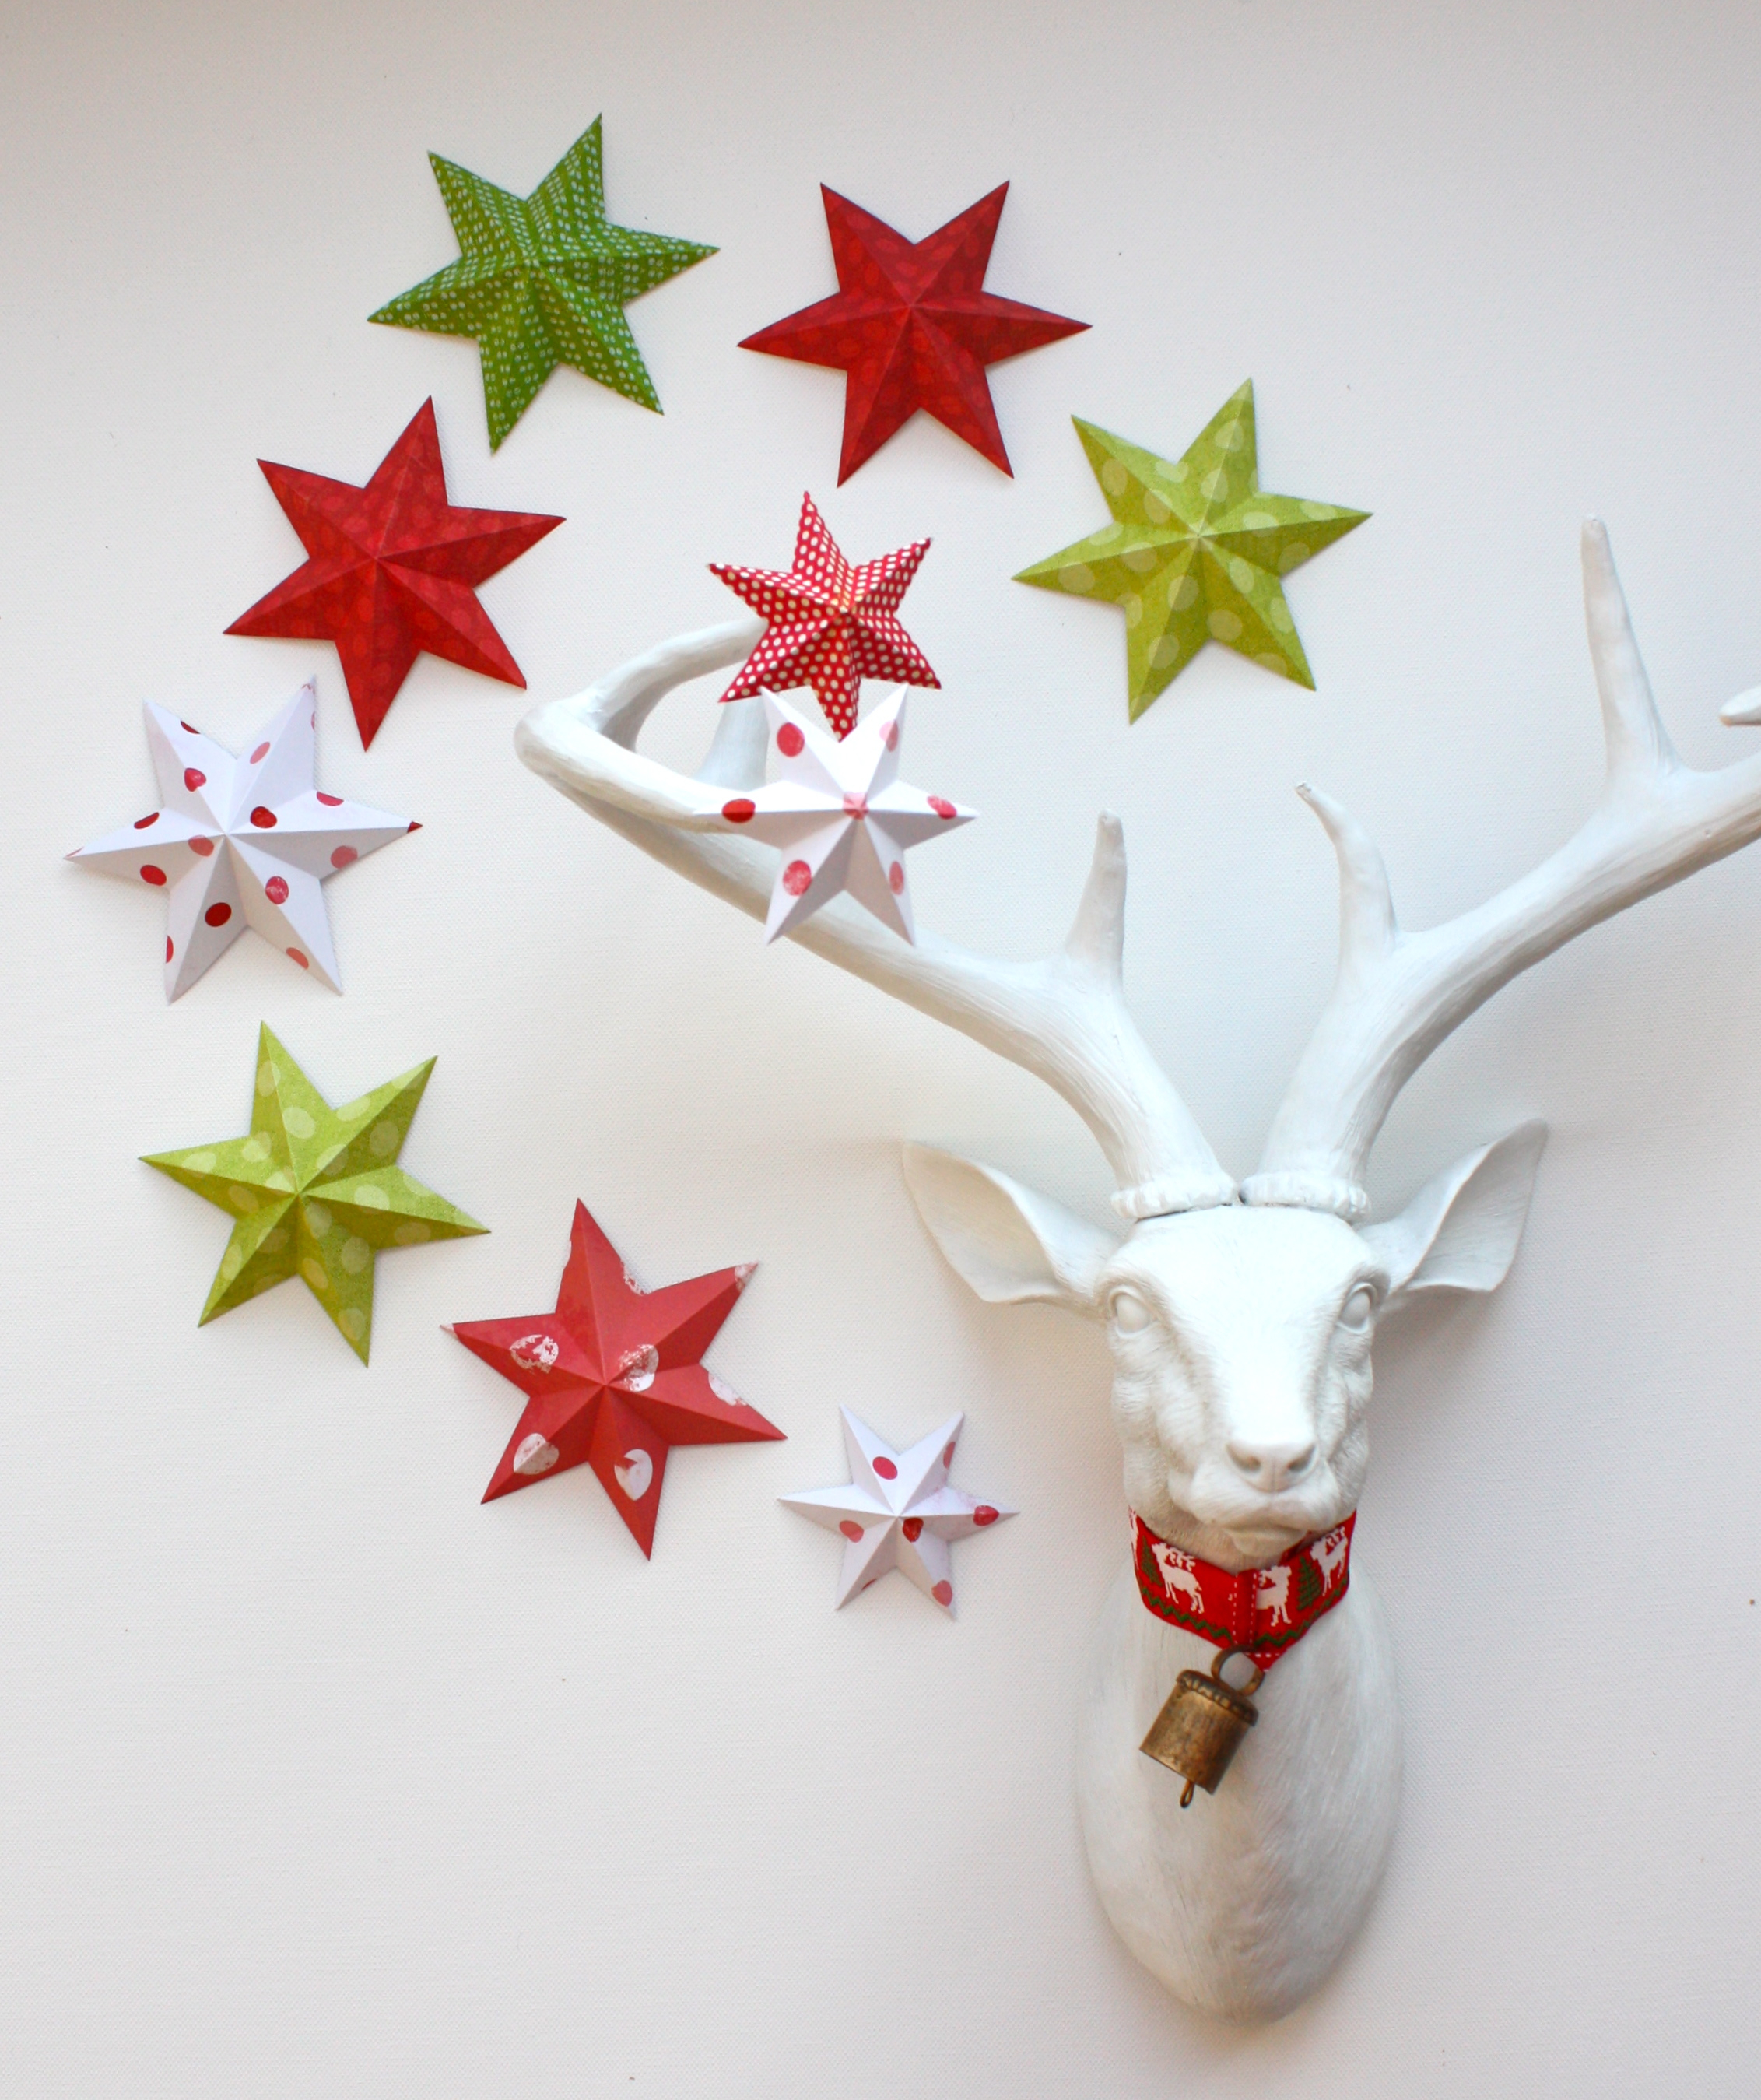 paper 6 point stars strastruck at christmas master - Paper Christmas Decorations To Make At Home